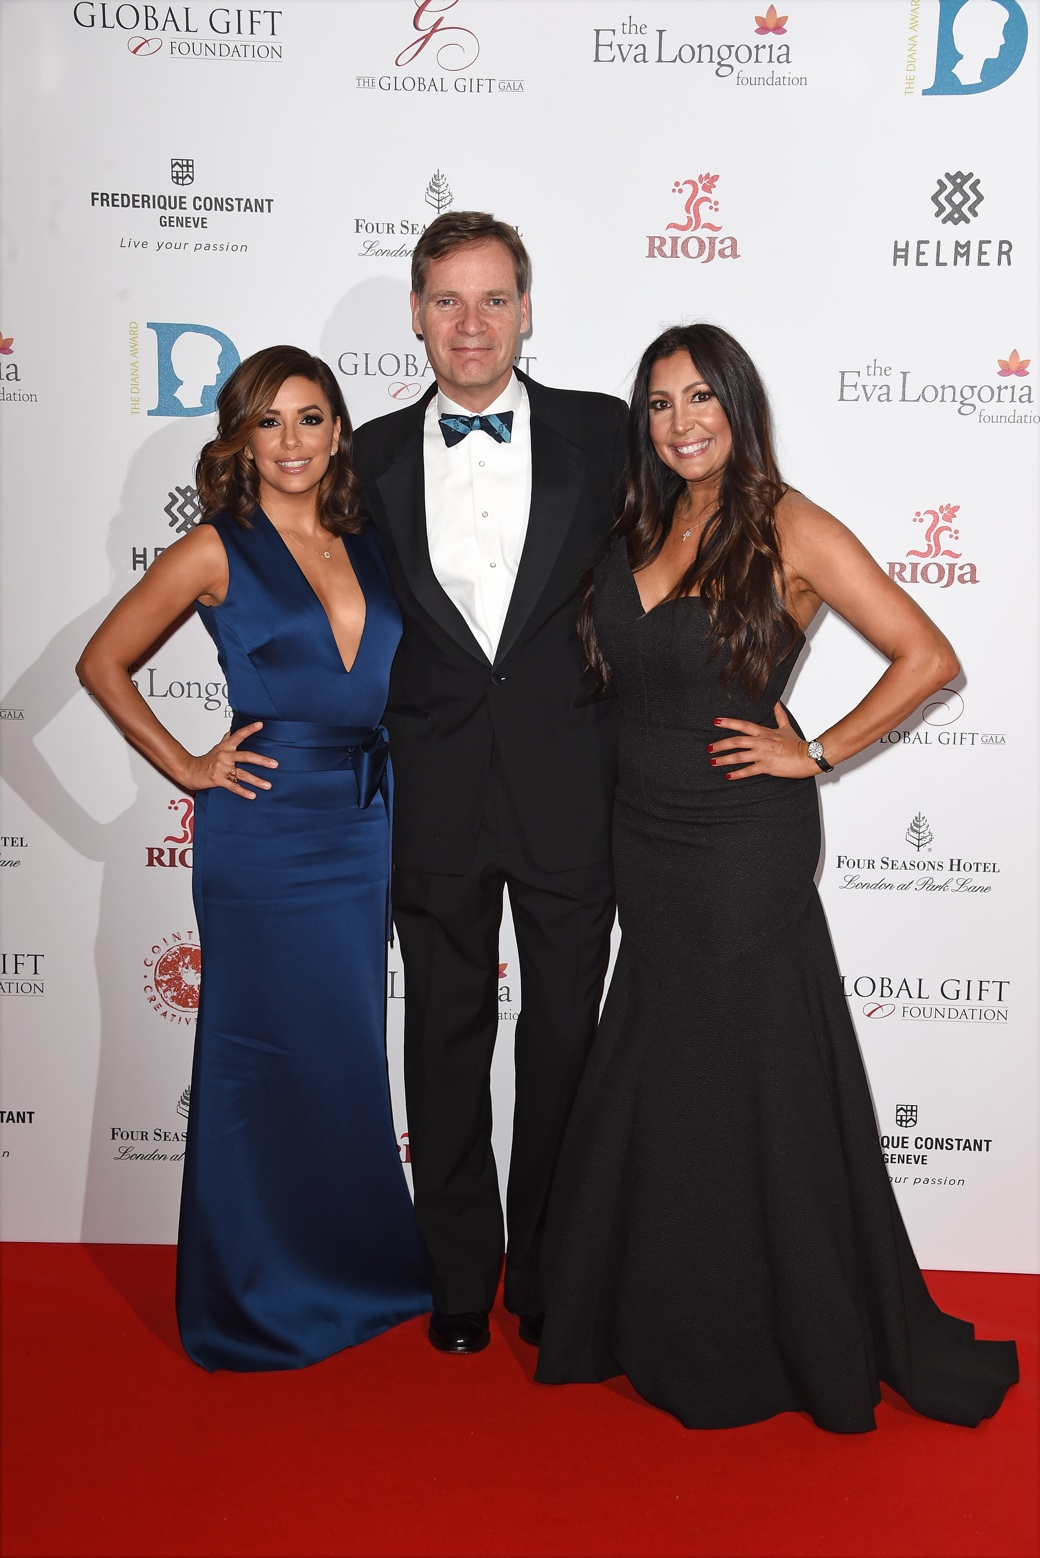 Eva Longoria attends the 6th edition of The Global Gift Gala at the Four Seasons Hotel London at Park Lane with Eva Longoria as Honorary Chair.